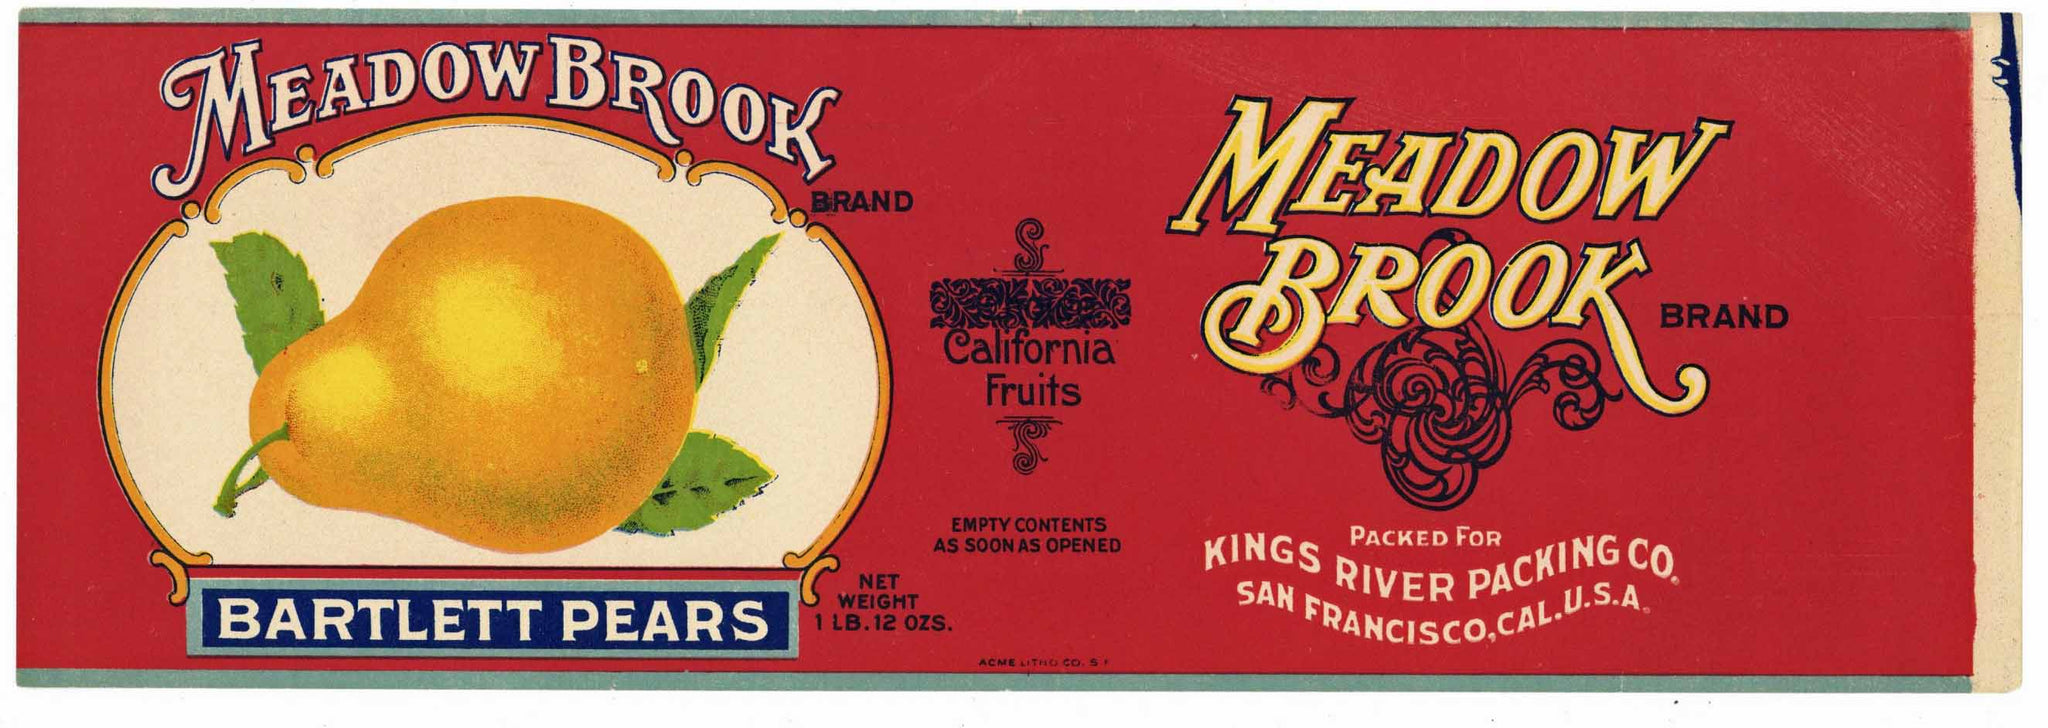 Meadow Brook Brand Vintage Pear Can Label